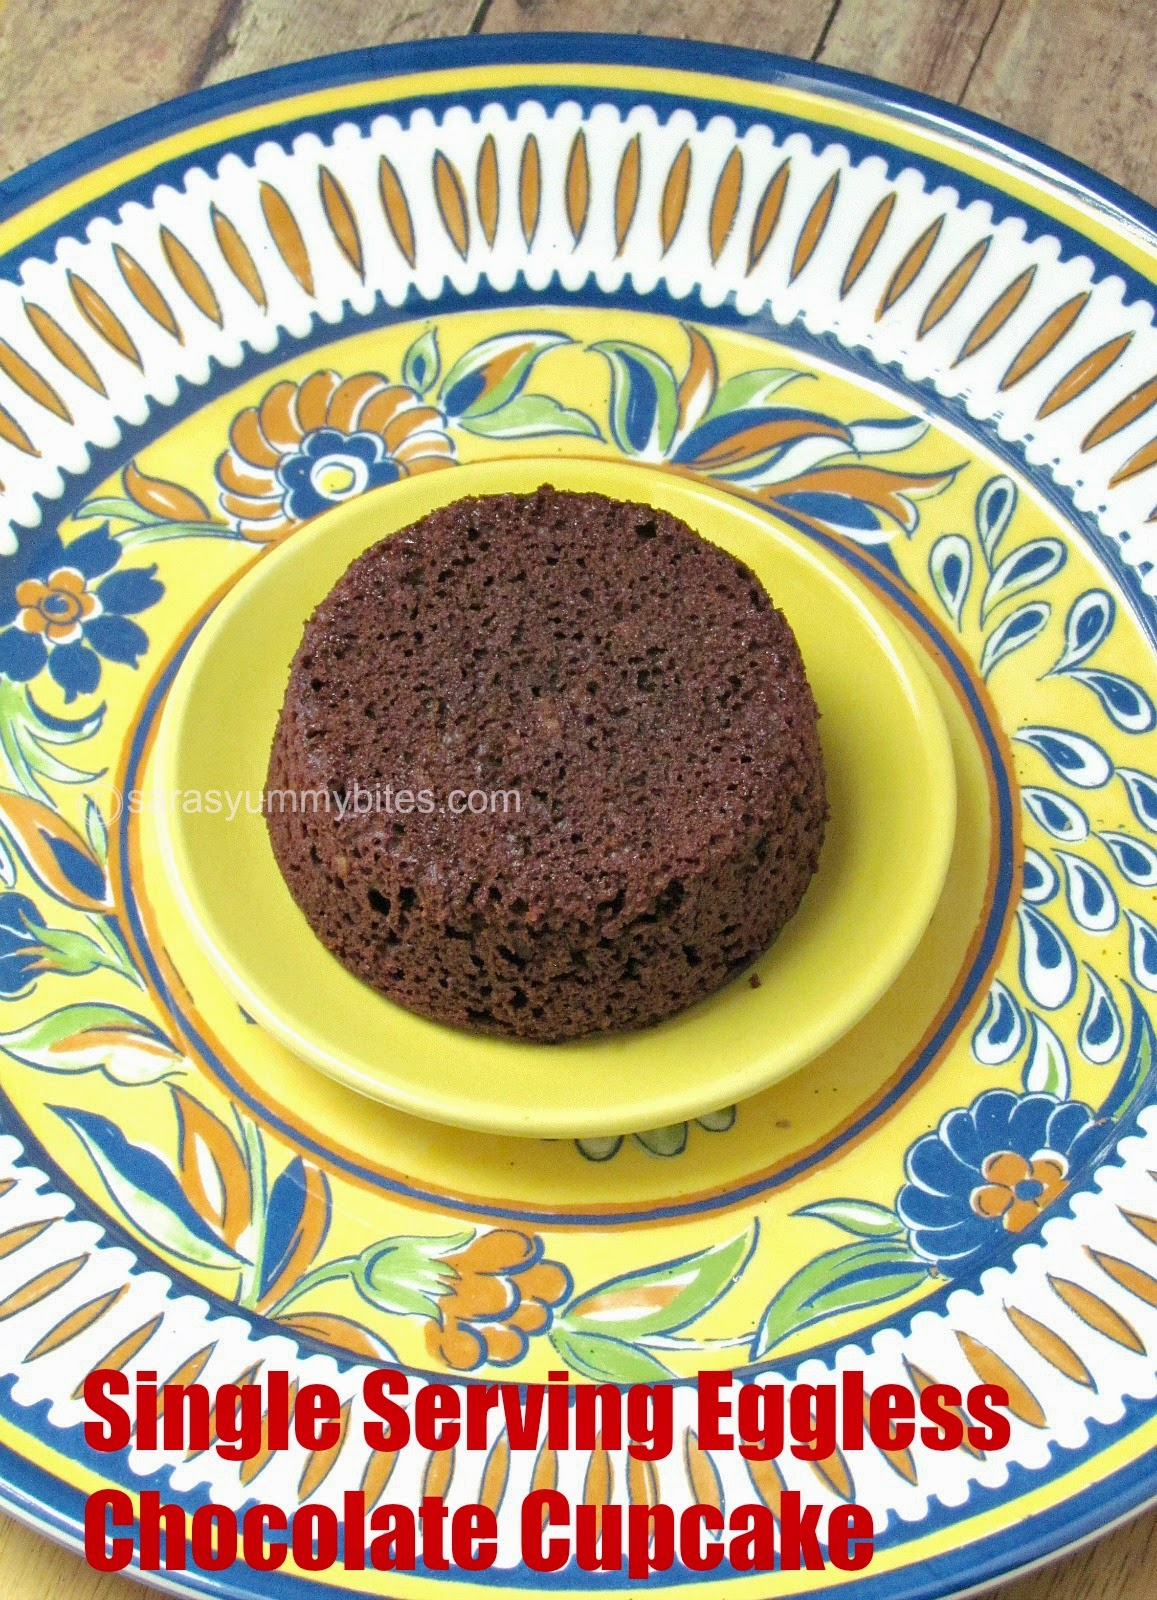 Single Serving Eggless Chocolate Cupcake